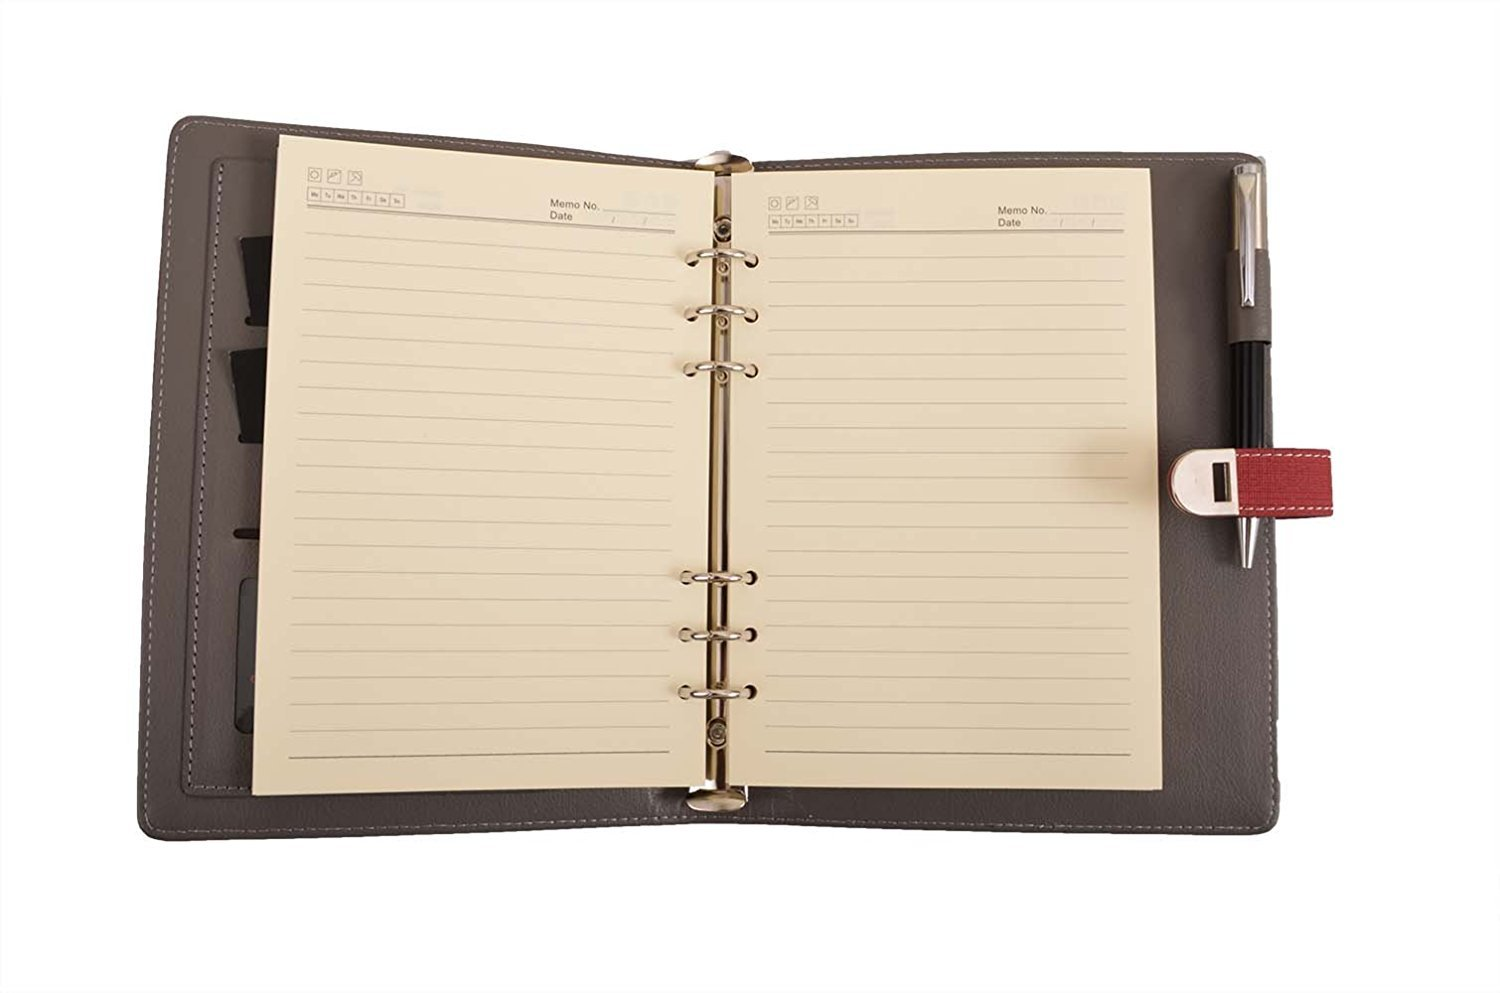 Coi Luxury Red Fabric unique best self journal business undated passion goal planner / daily diary & little more organizer/personal planner with pen with Free Pen